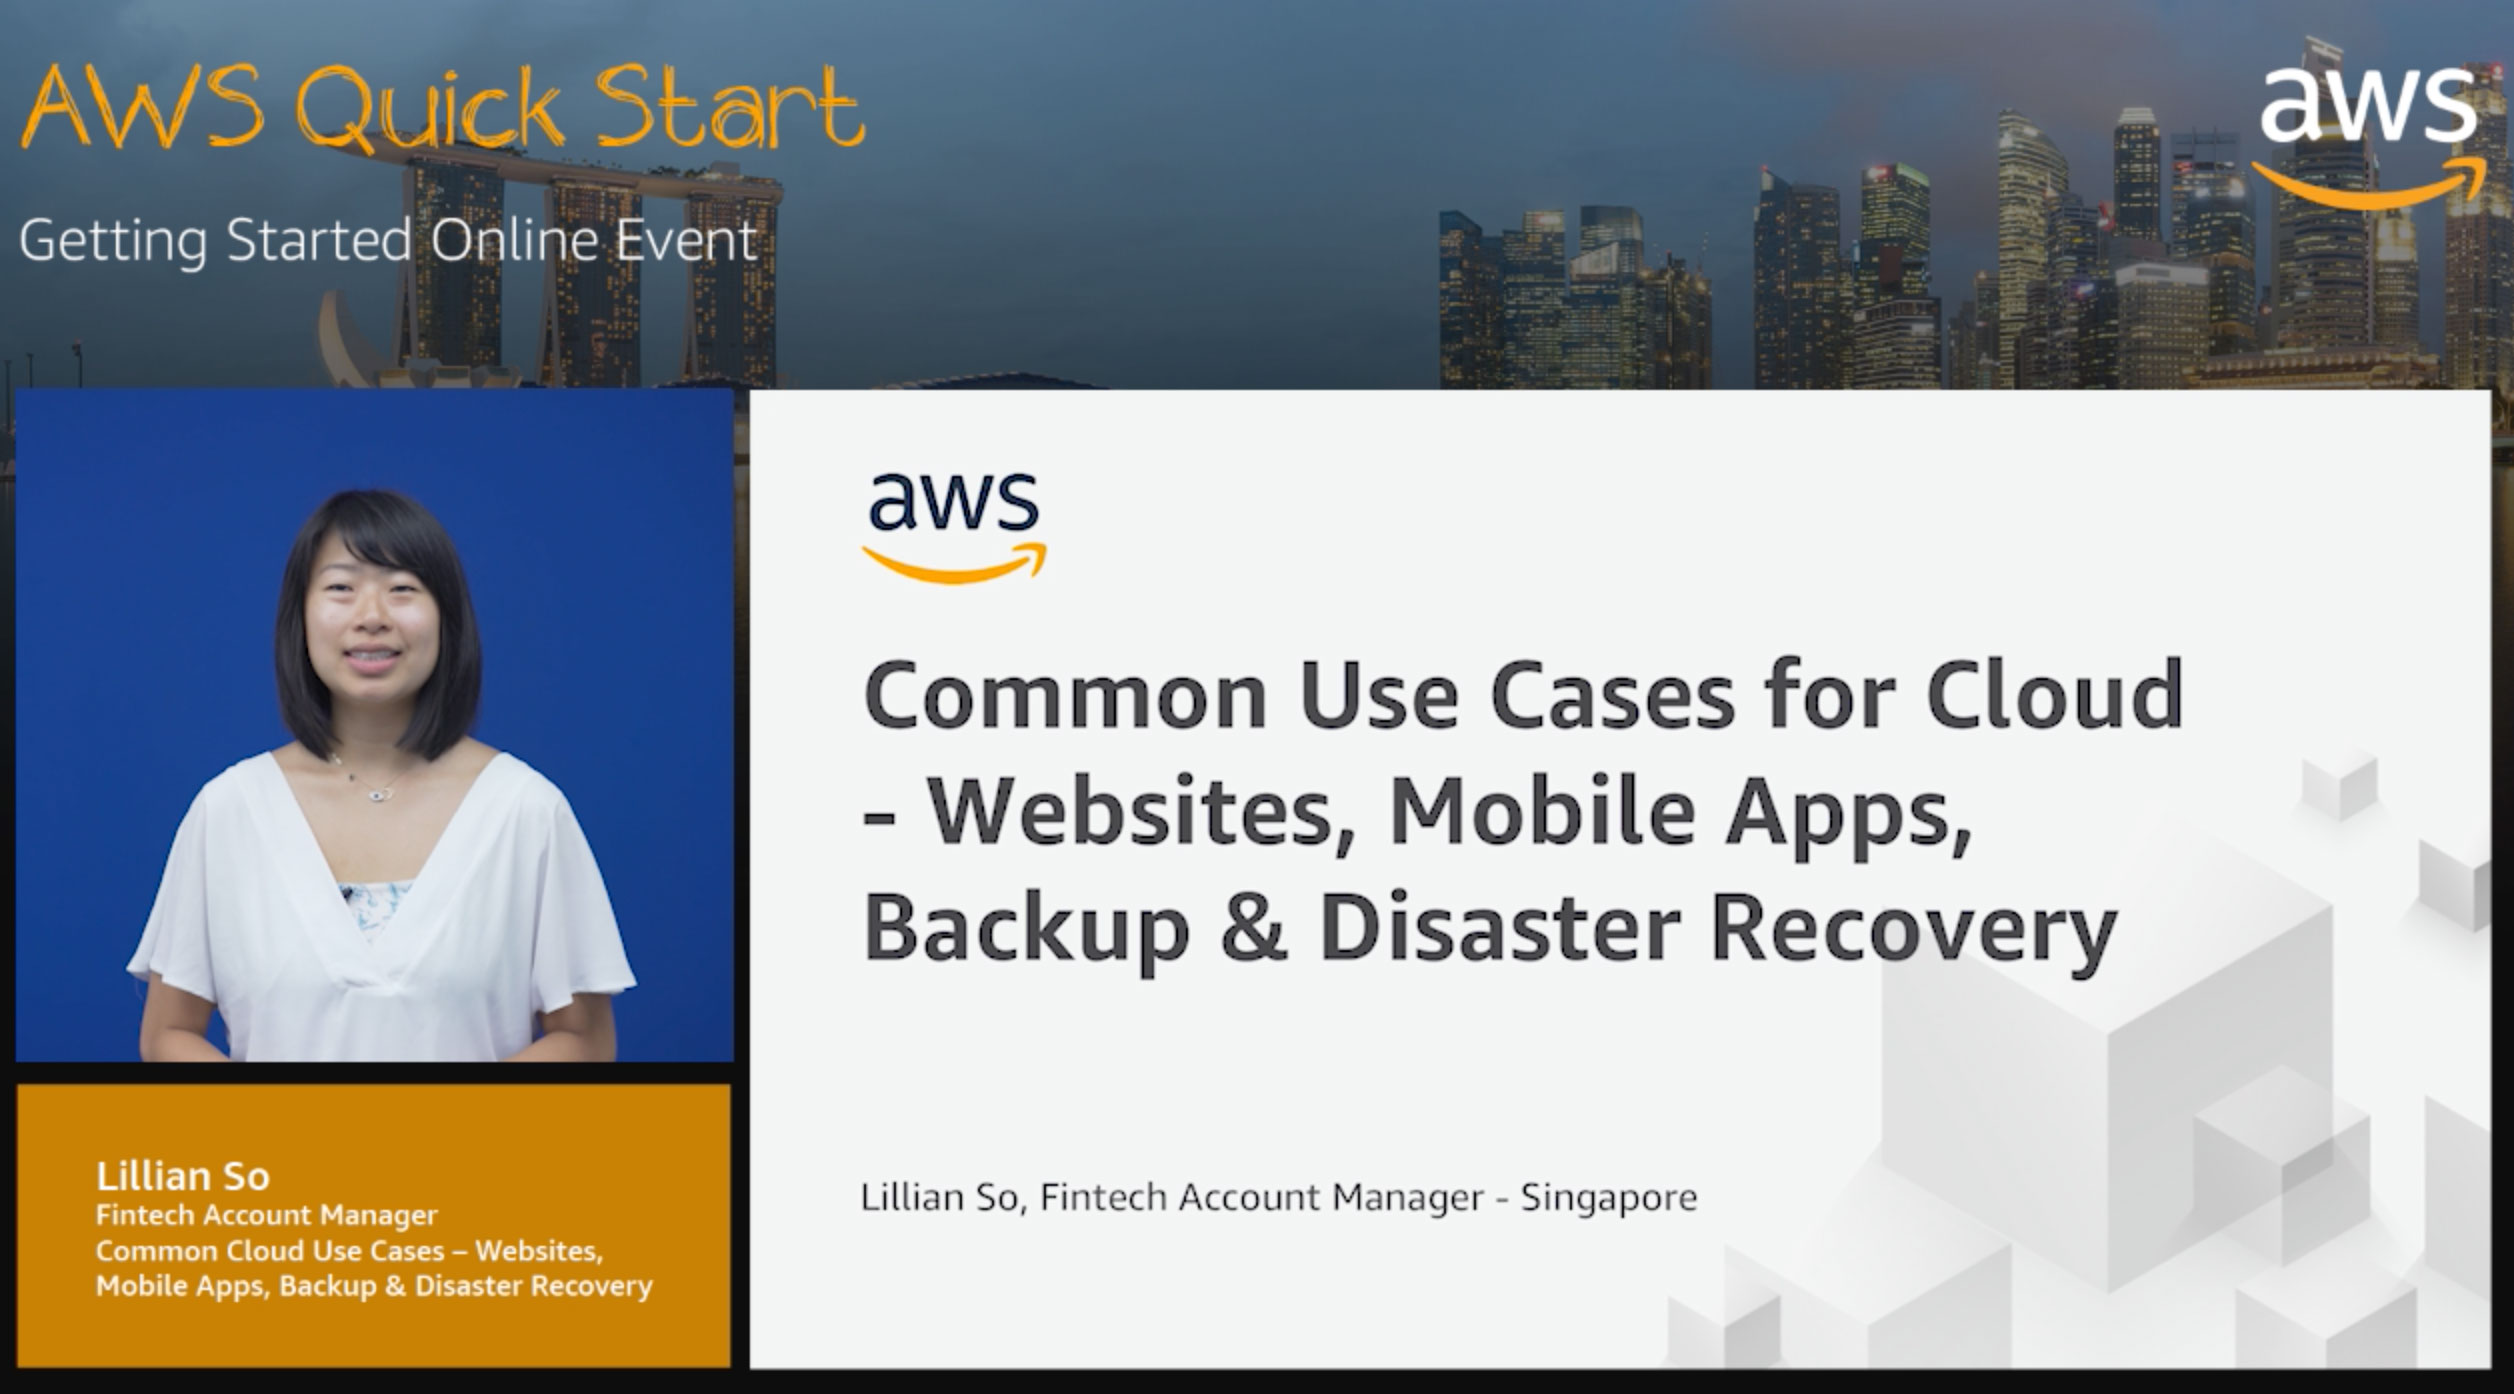 L100: Common Use Cases for Cloud - Websites, Mobile Apps, Backup & Disaster Recovery